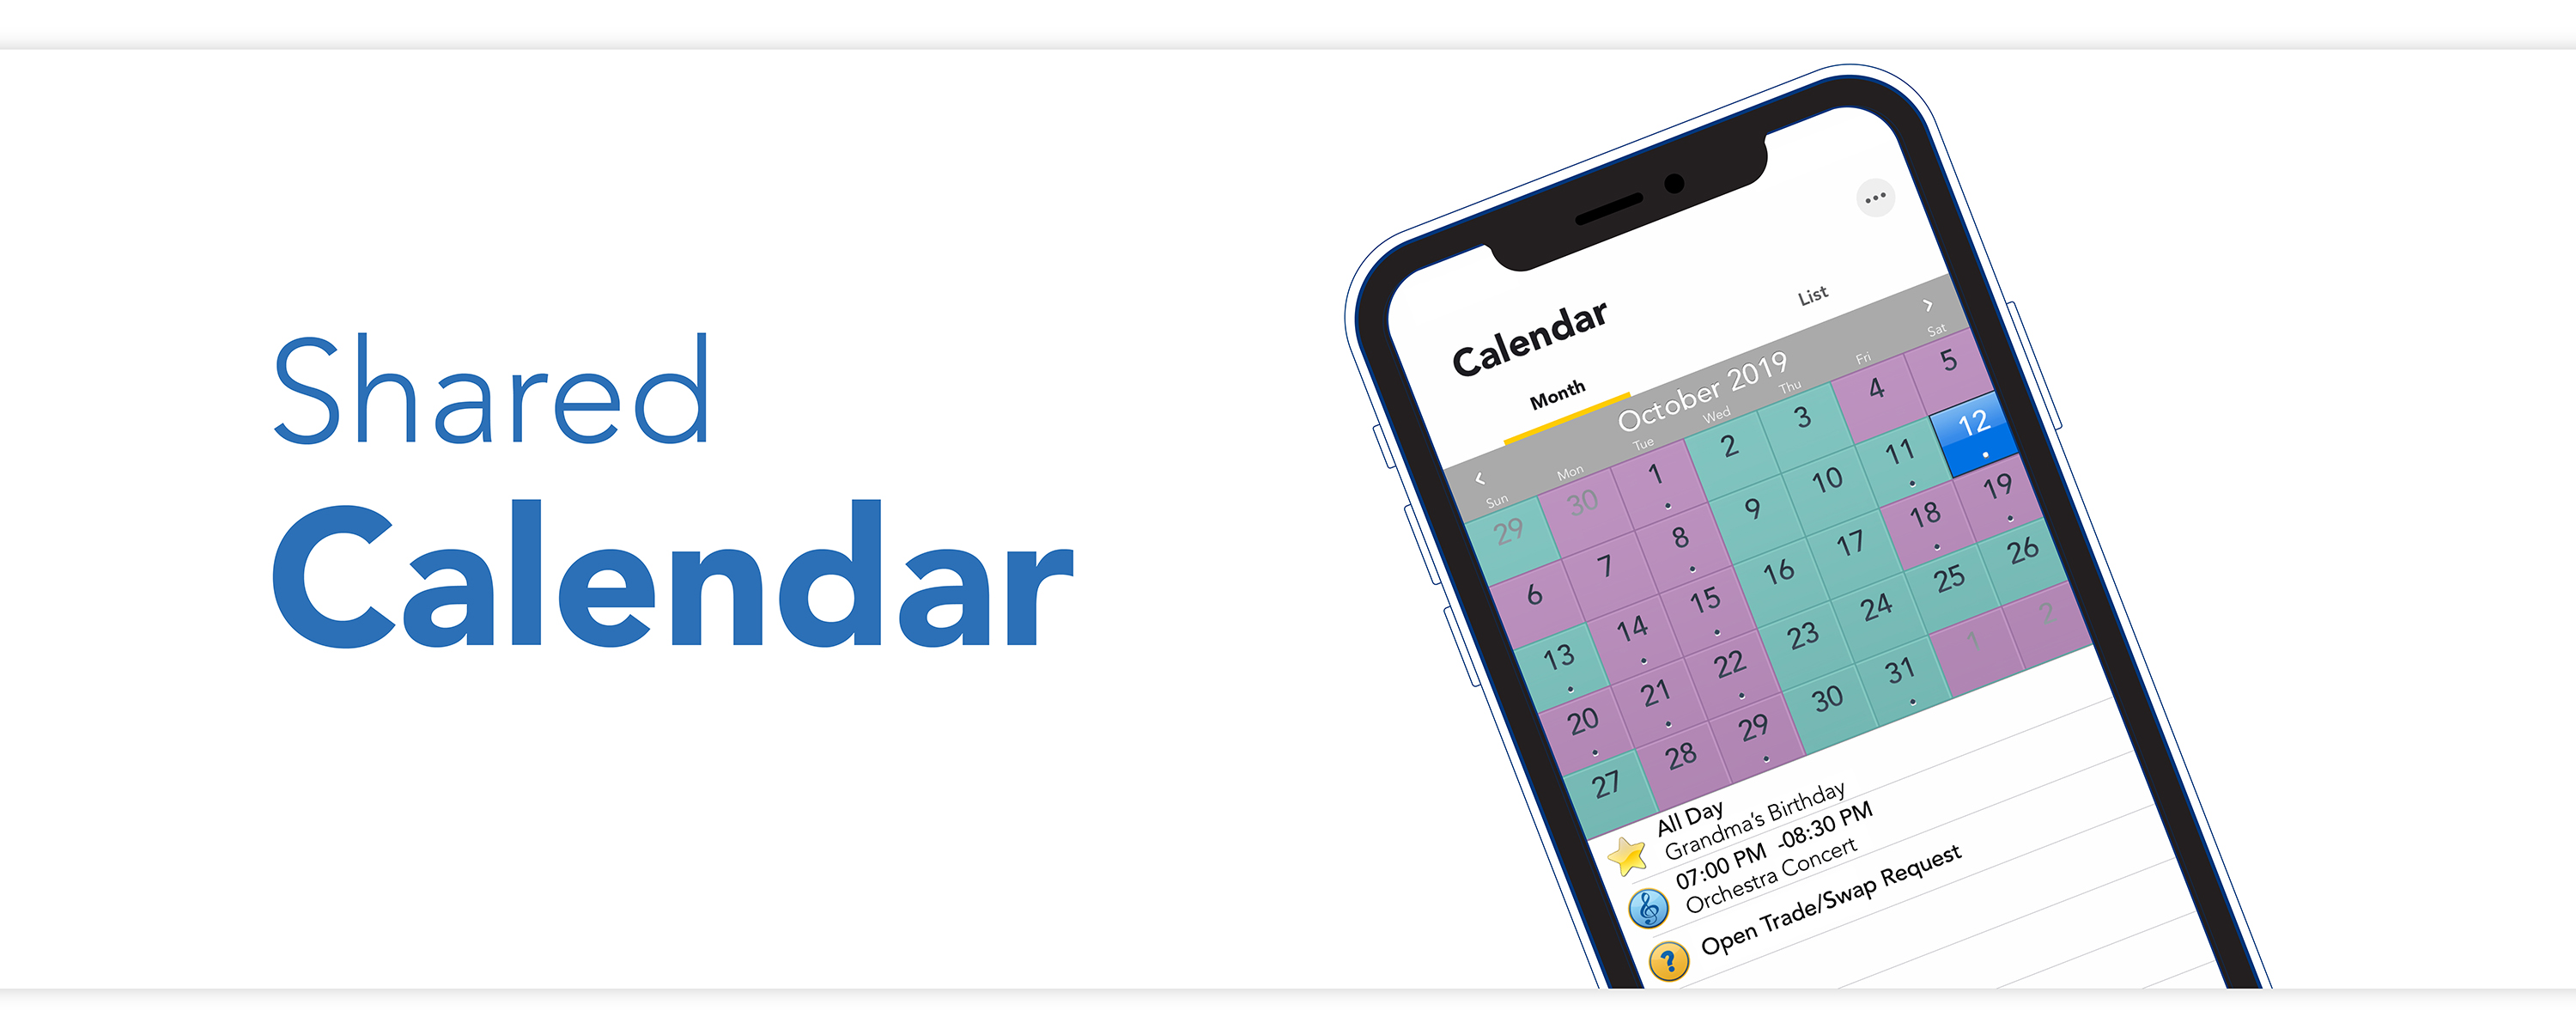 Check your parenting time, schedule events, and more with the shared calendar on the OFW mobile app.